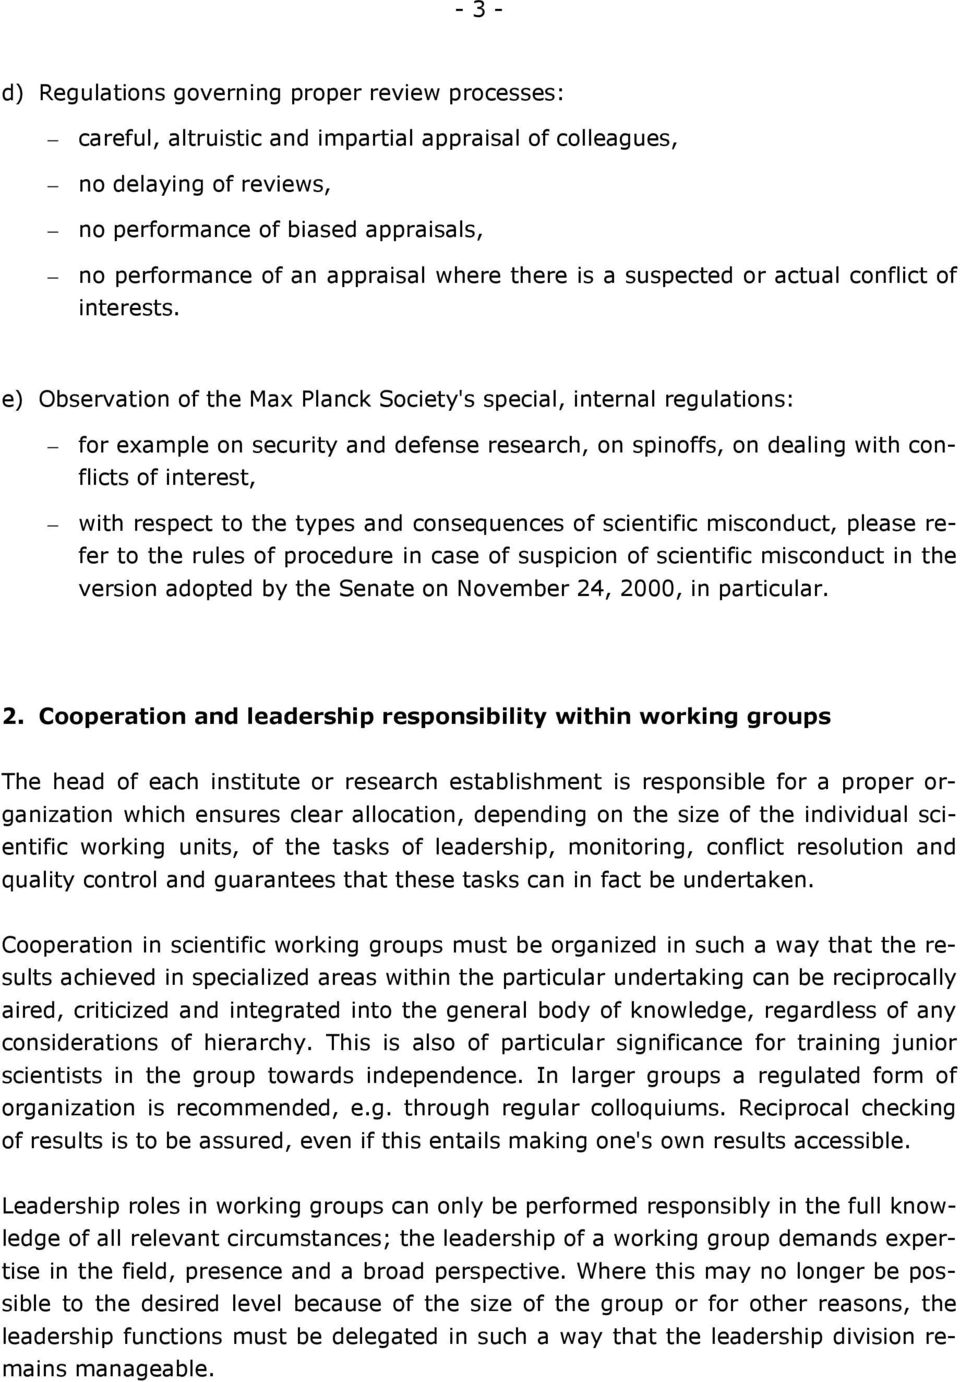 e) Observation of the Max Planck Society's special, internal regulations: for example on security and defense research, on spinoffs, on dealing with conflicts of interest, with respect to the types